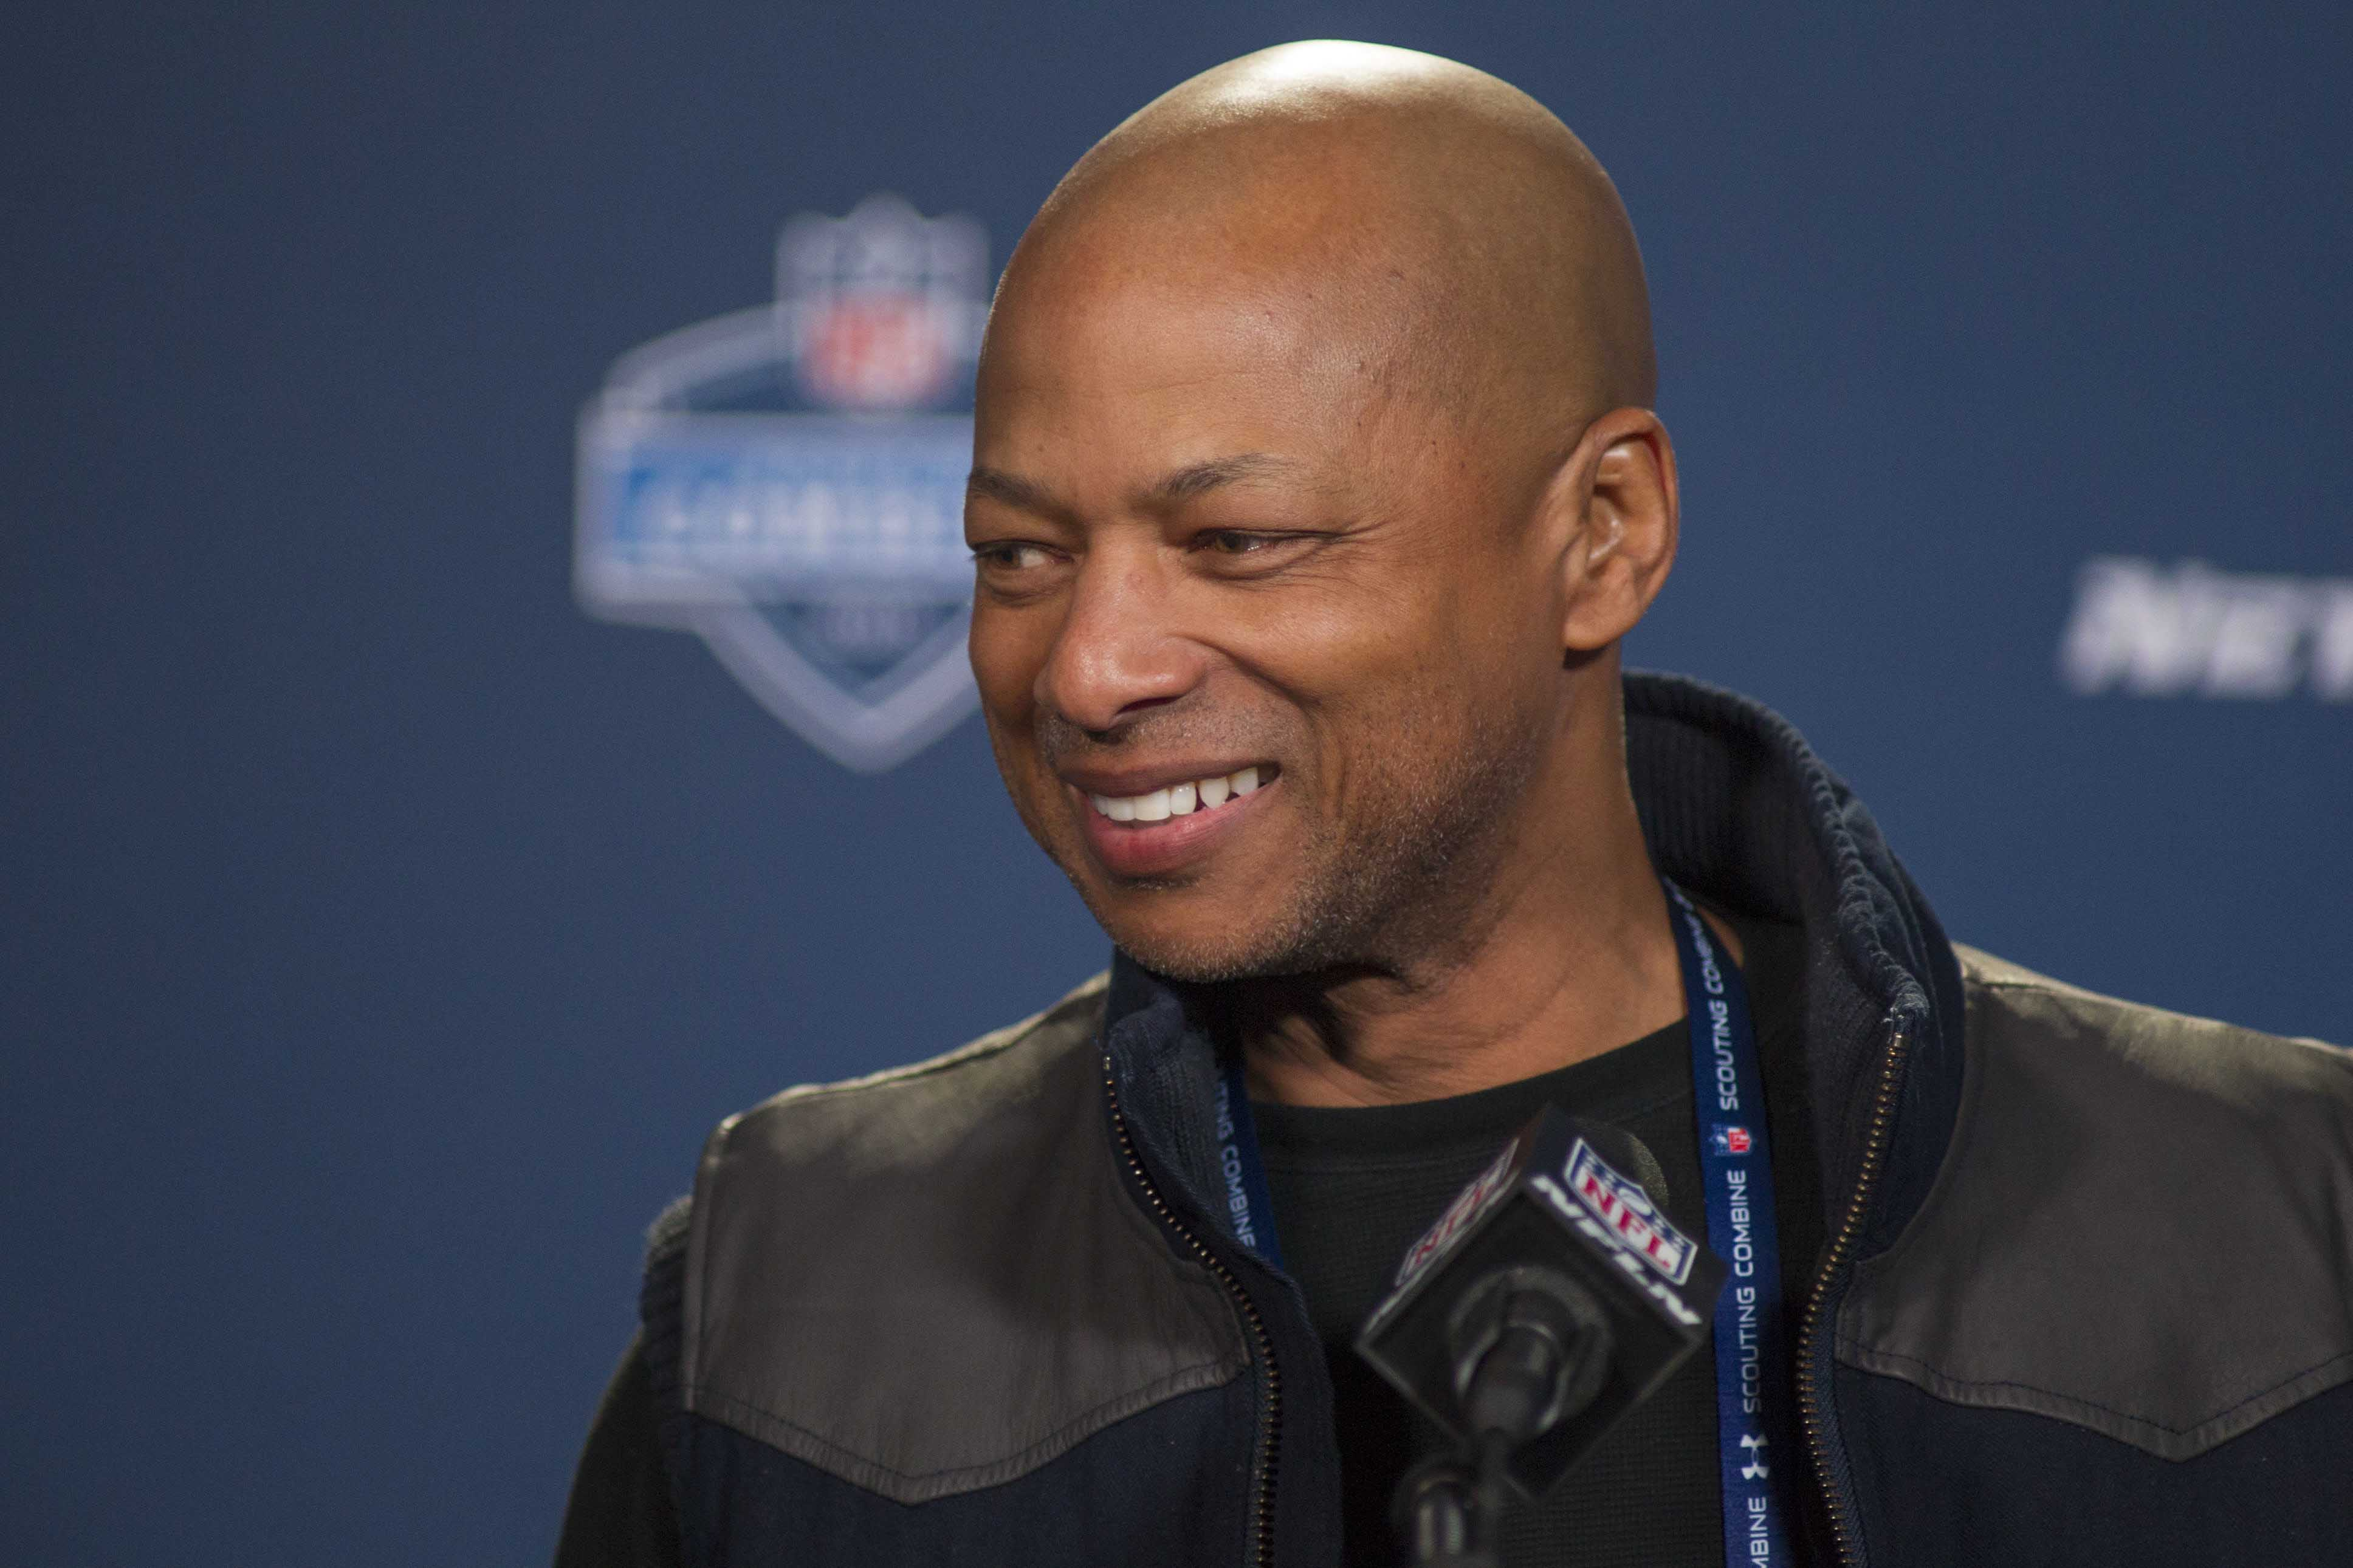 Feb 21, 2015; Indianapolis, IN, USA; New York Giants general manager Jerry Reese speaks to the media at the 2015 NFL Combine at Lucas Oil Stadium. Mandatory Credit: Trevor Ruszkowski-USA TODAY Sports